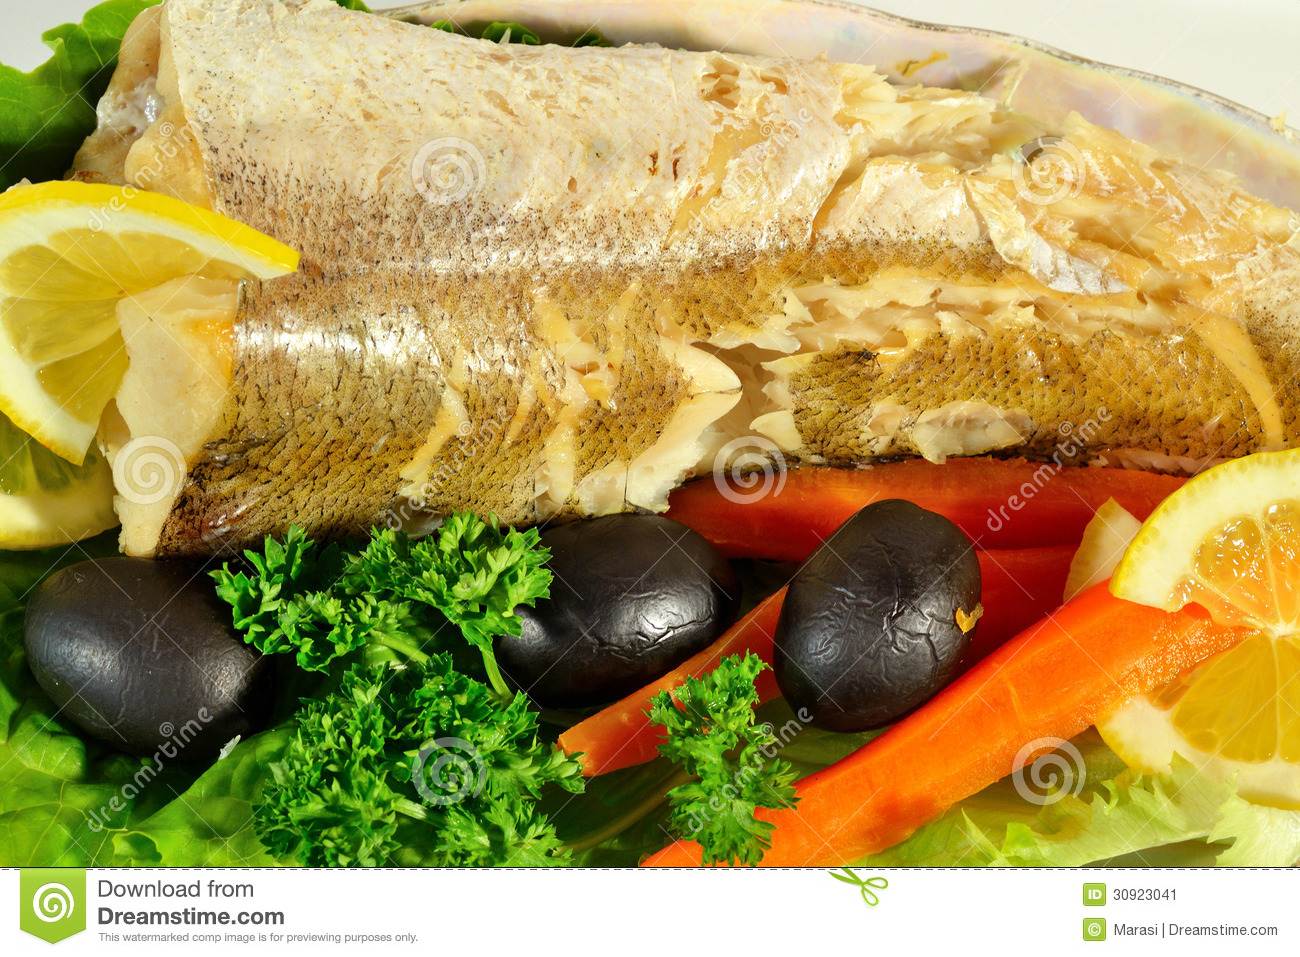 Fish with vegetables and herbs stock image image 30923041 for What vegetables go with fish